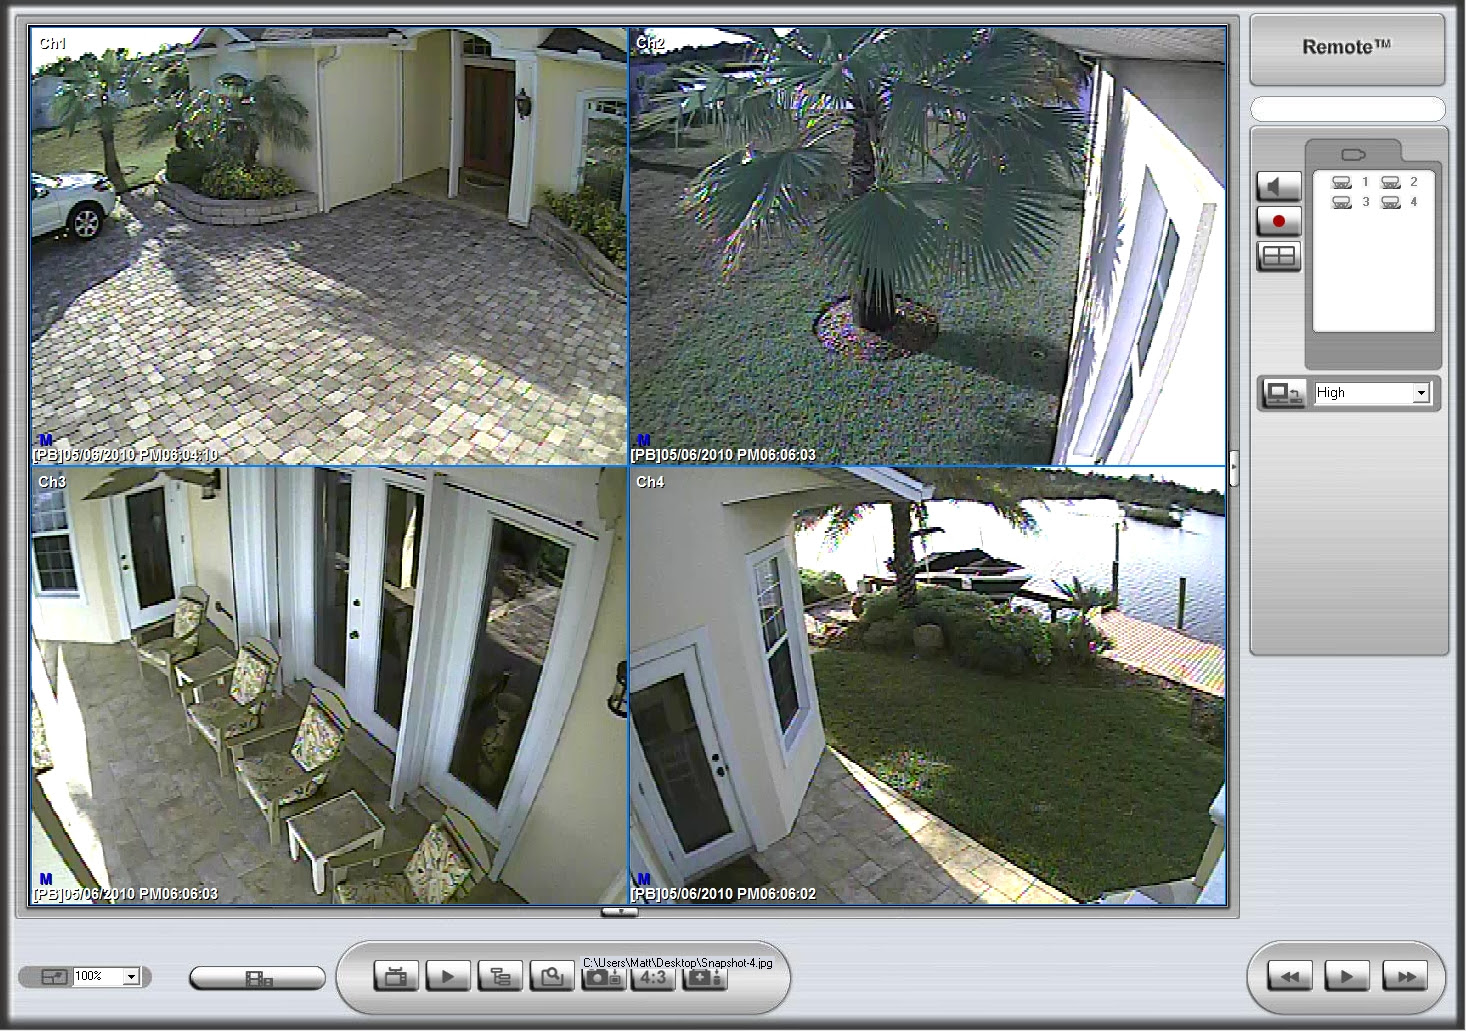 garage door opener installation cost home security camera systems 1466 x 1031 - Security Camera Installation Cost